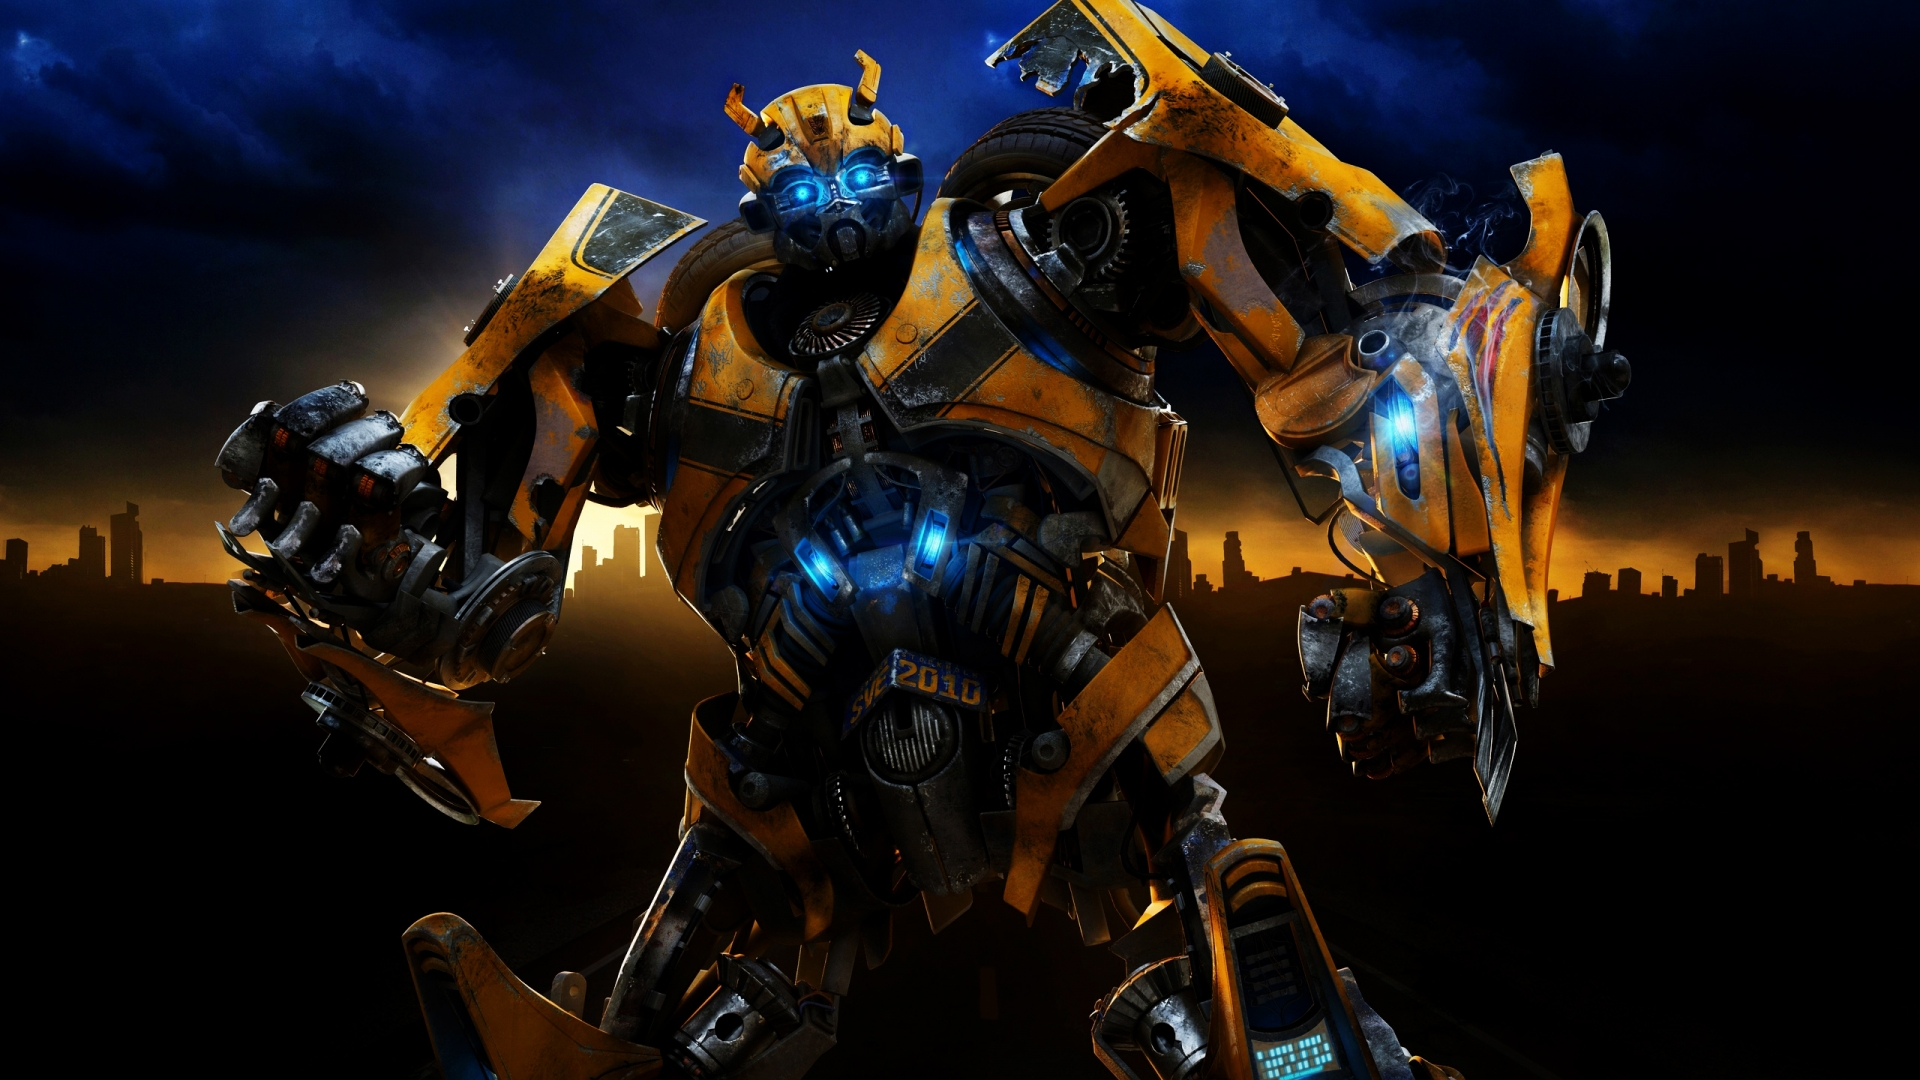 Transformers 2 Bumblebee Cool Wallpaper